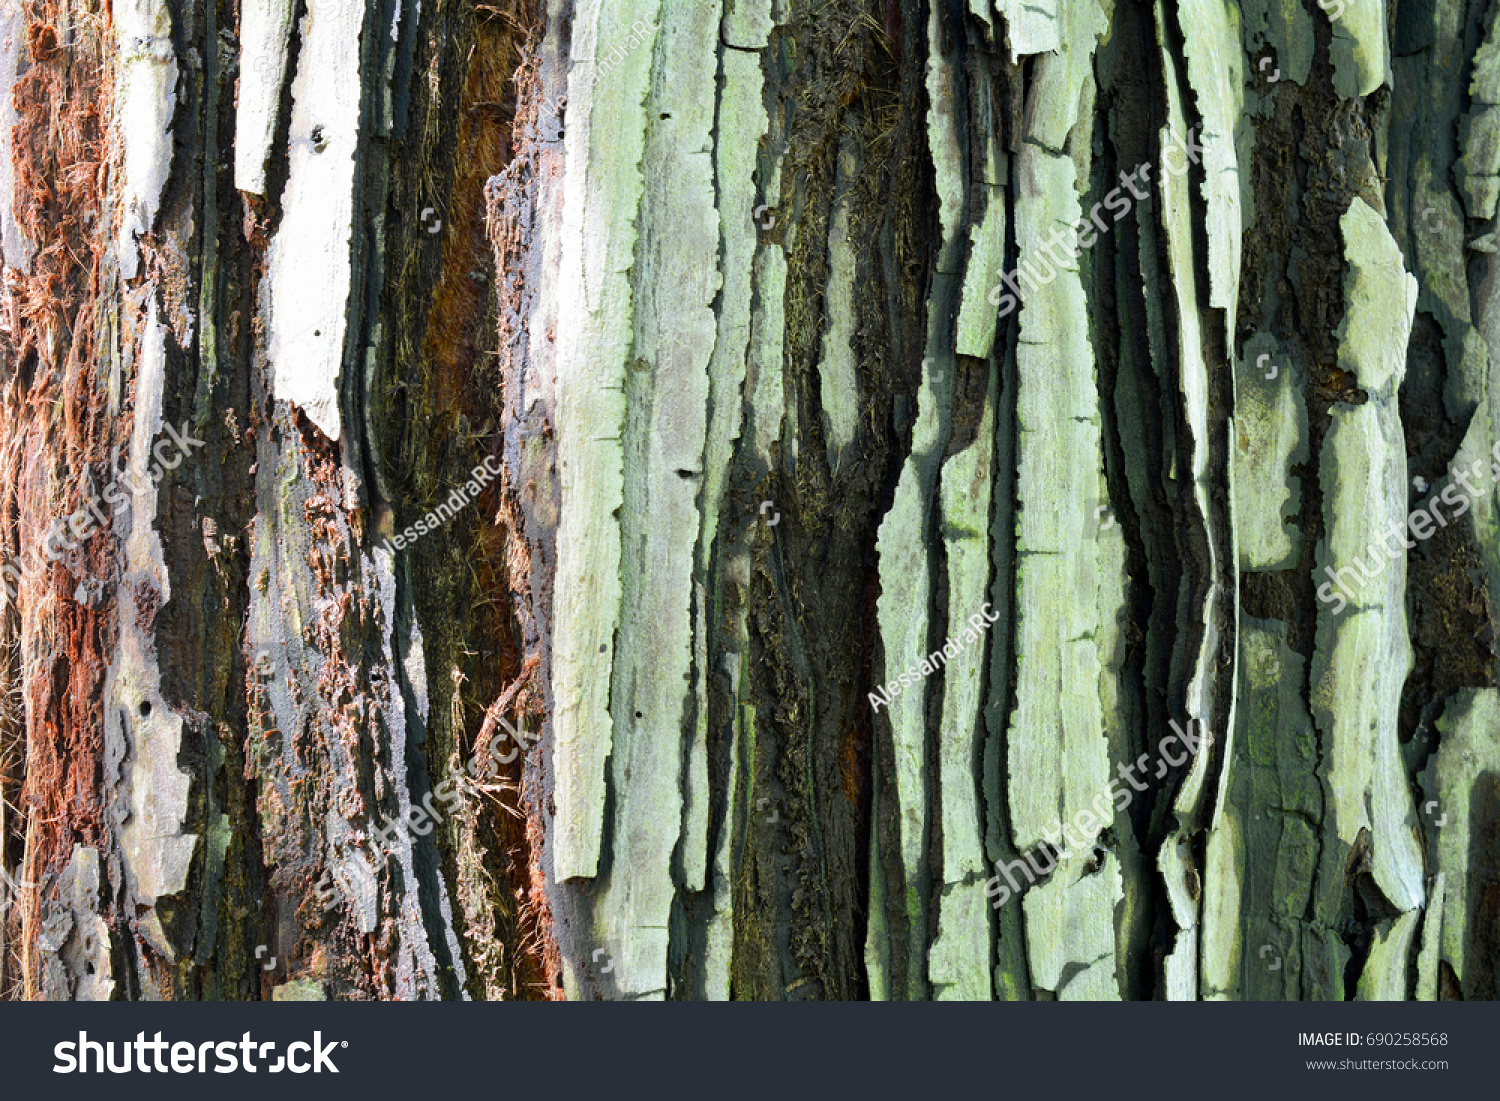 Bark Young Coastal Redwood Sequoia Sempervirens Stock Photo (Edit ...